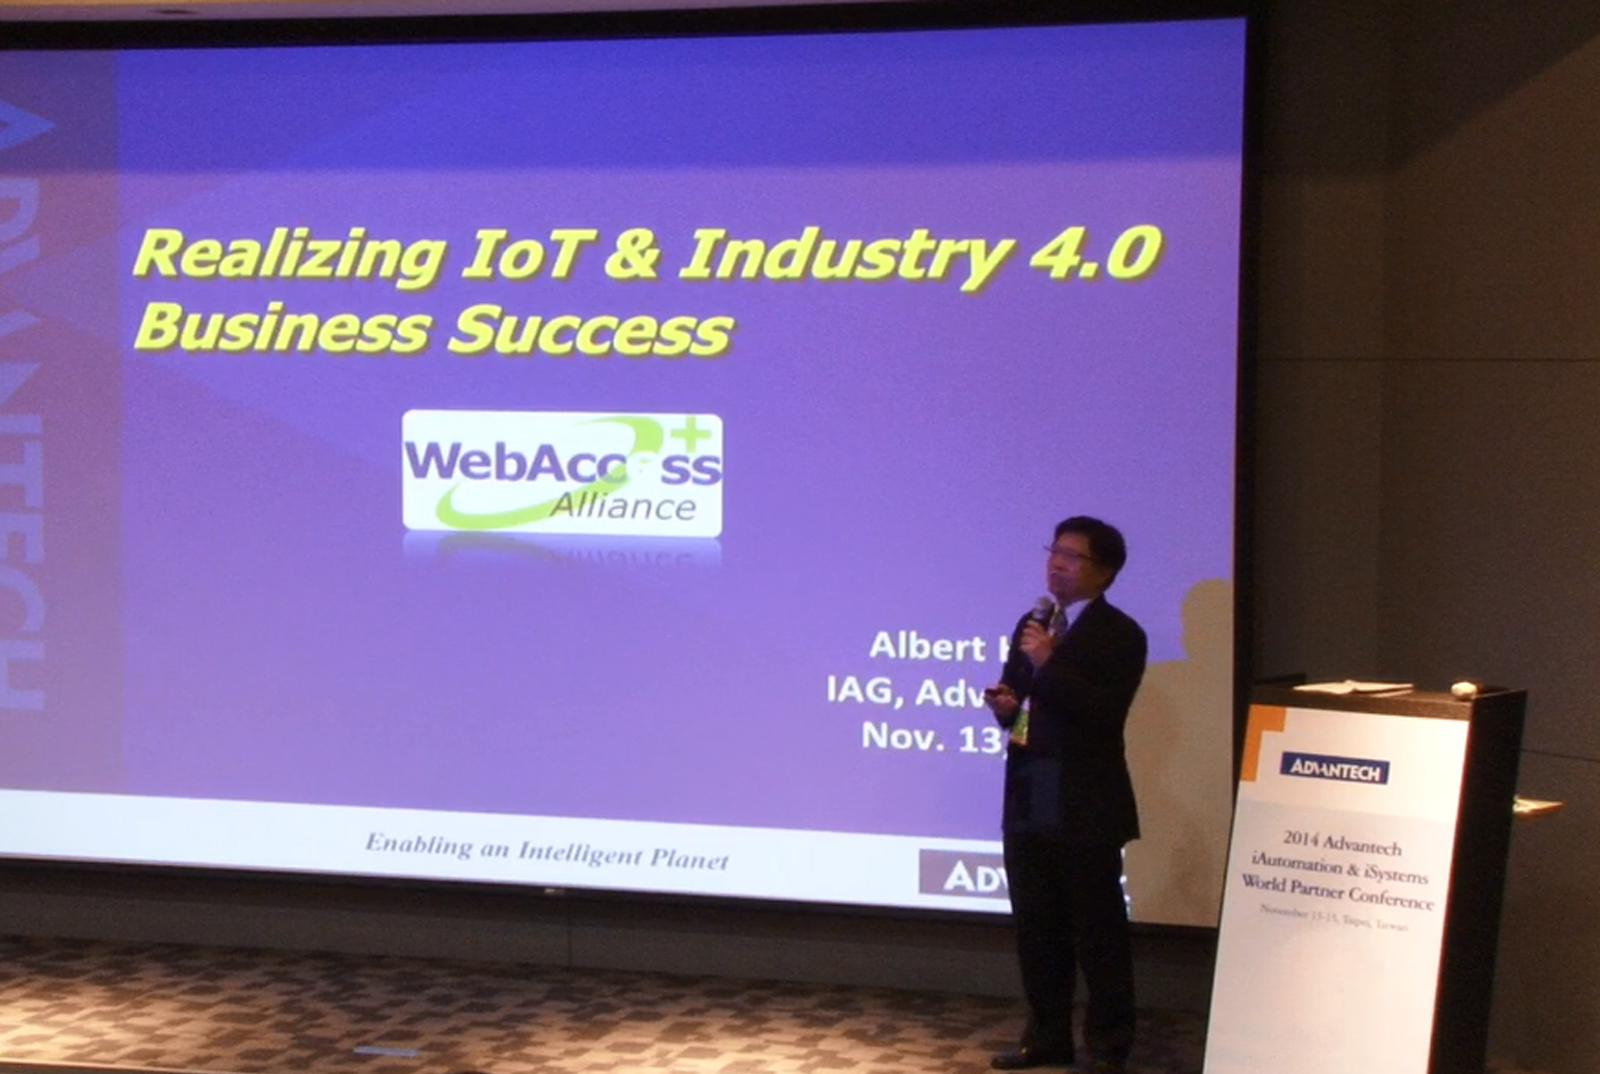 Realizing IoT & Industry 4.0 Business Success